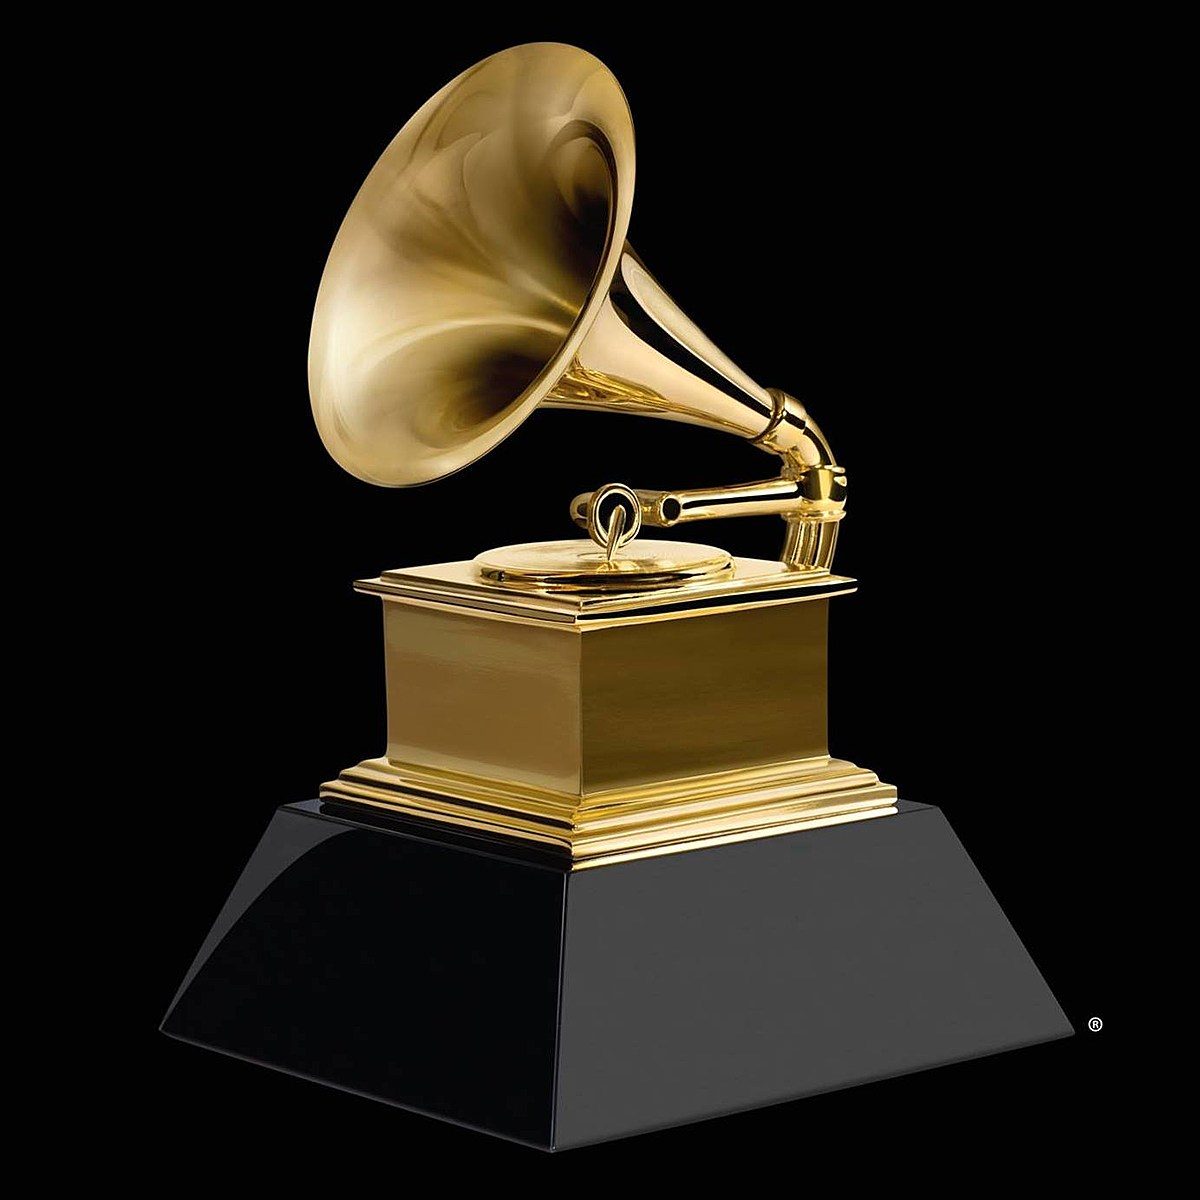 Grammy 2020 nominations: Bon Iver, Vampire Weekend, Lana Del Rey, Lizzo more for AOTY